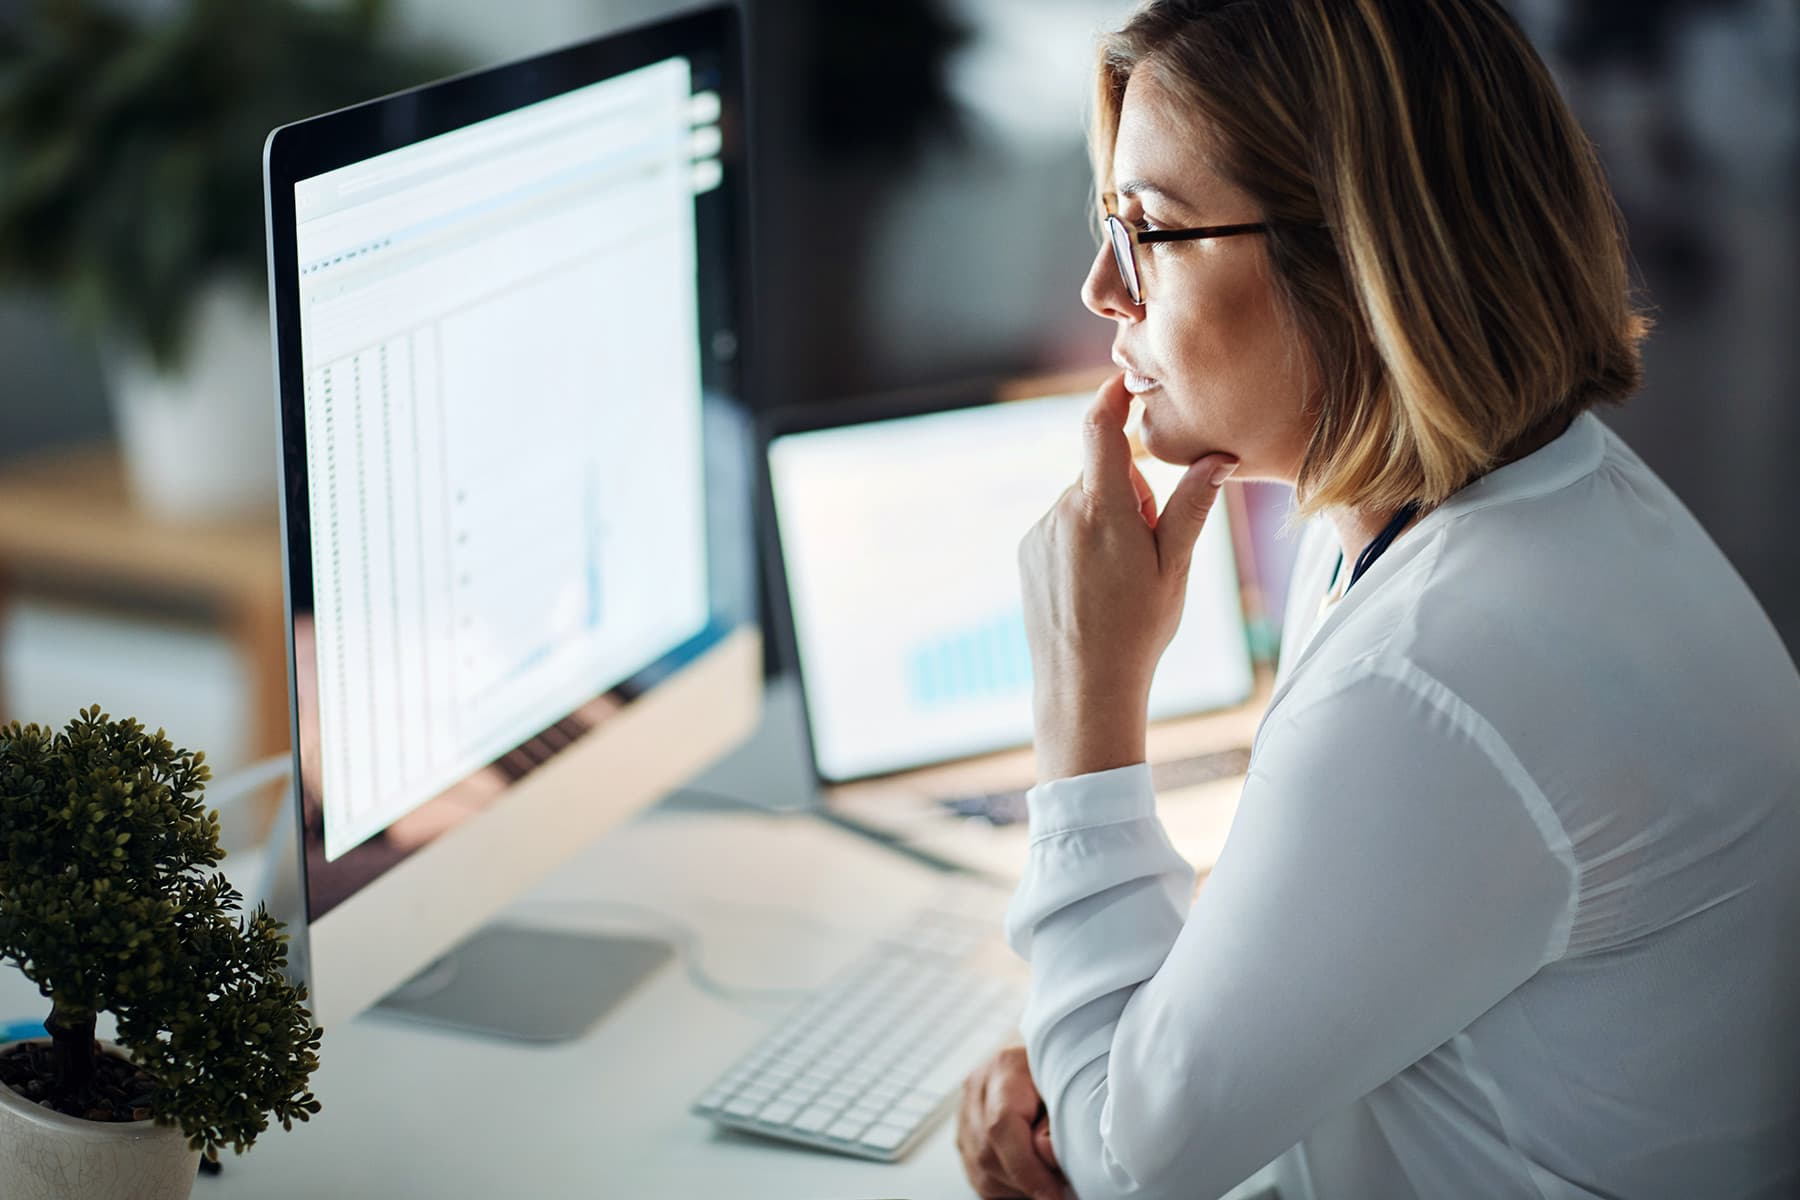 photo of woman using two computer screens